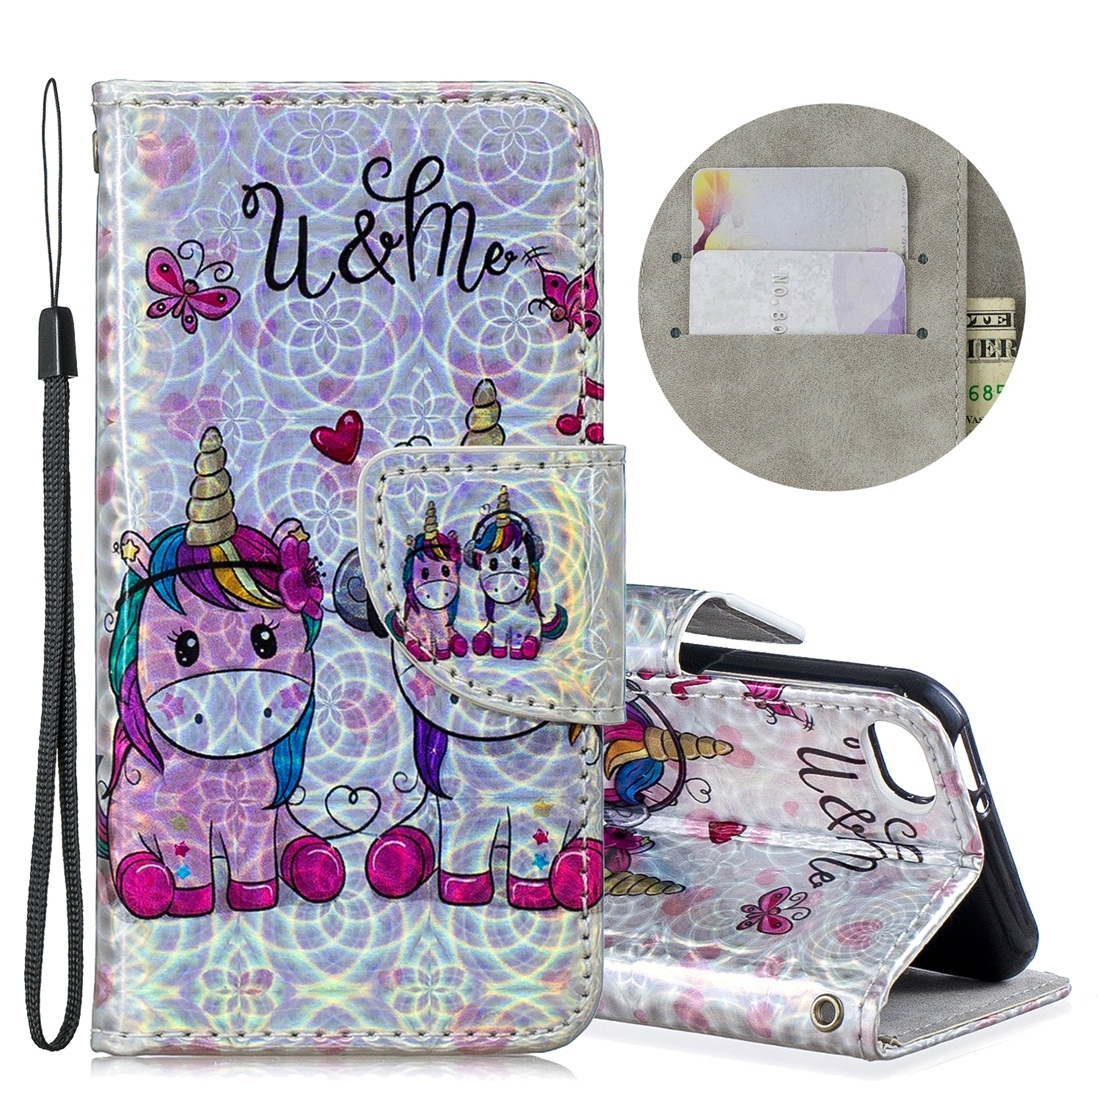 Dazzle Colorful Design Leather Case w/ Slim Profile & Lanyard For iPod Touch 5/6 (Two Unicorns)